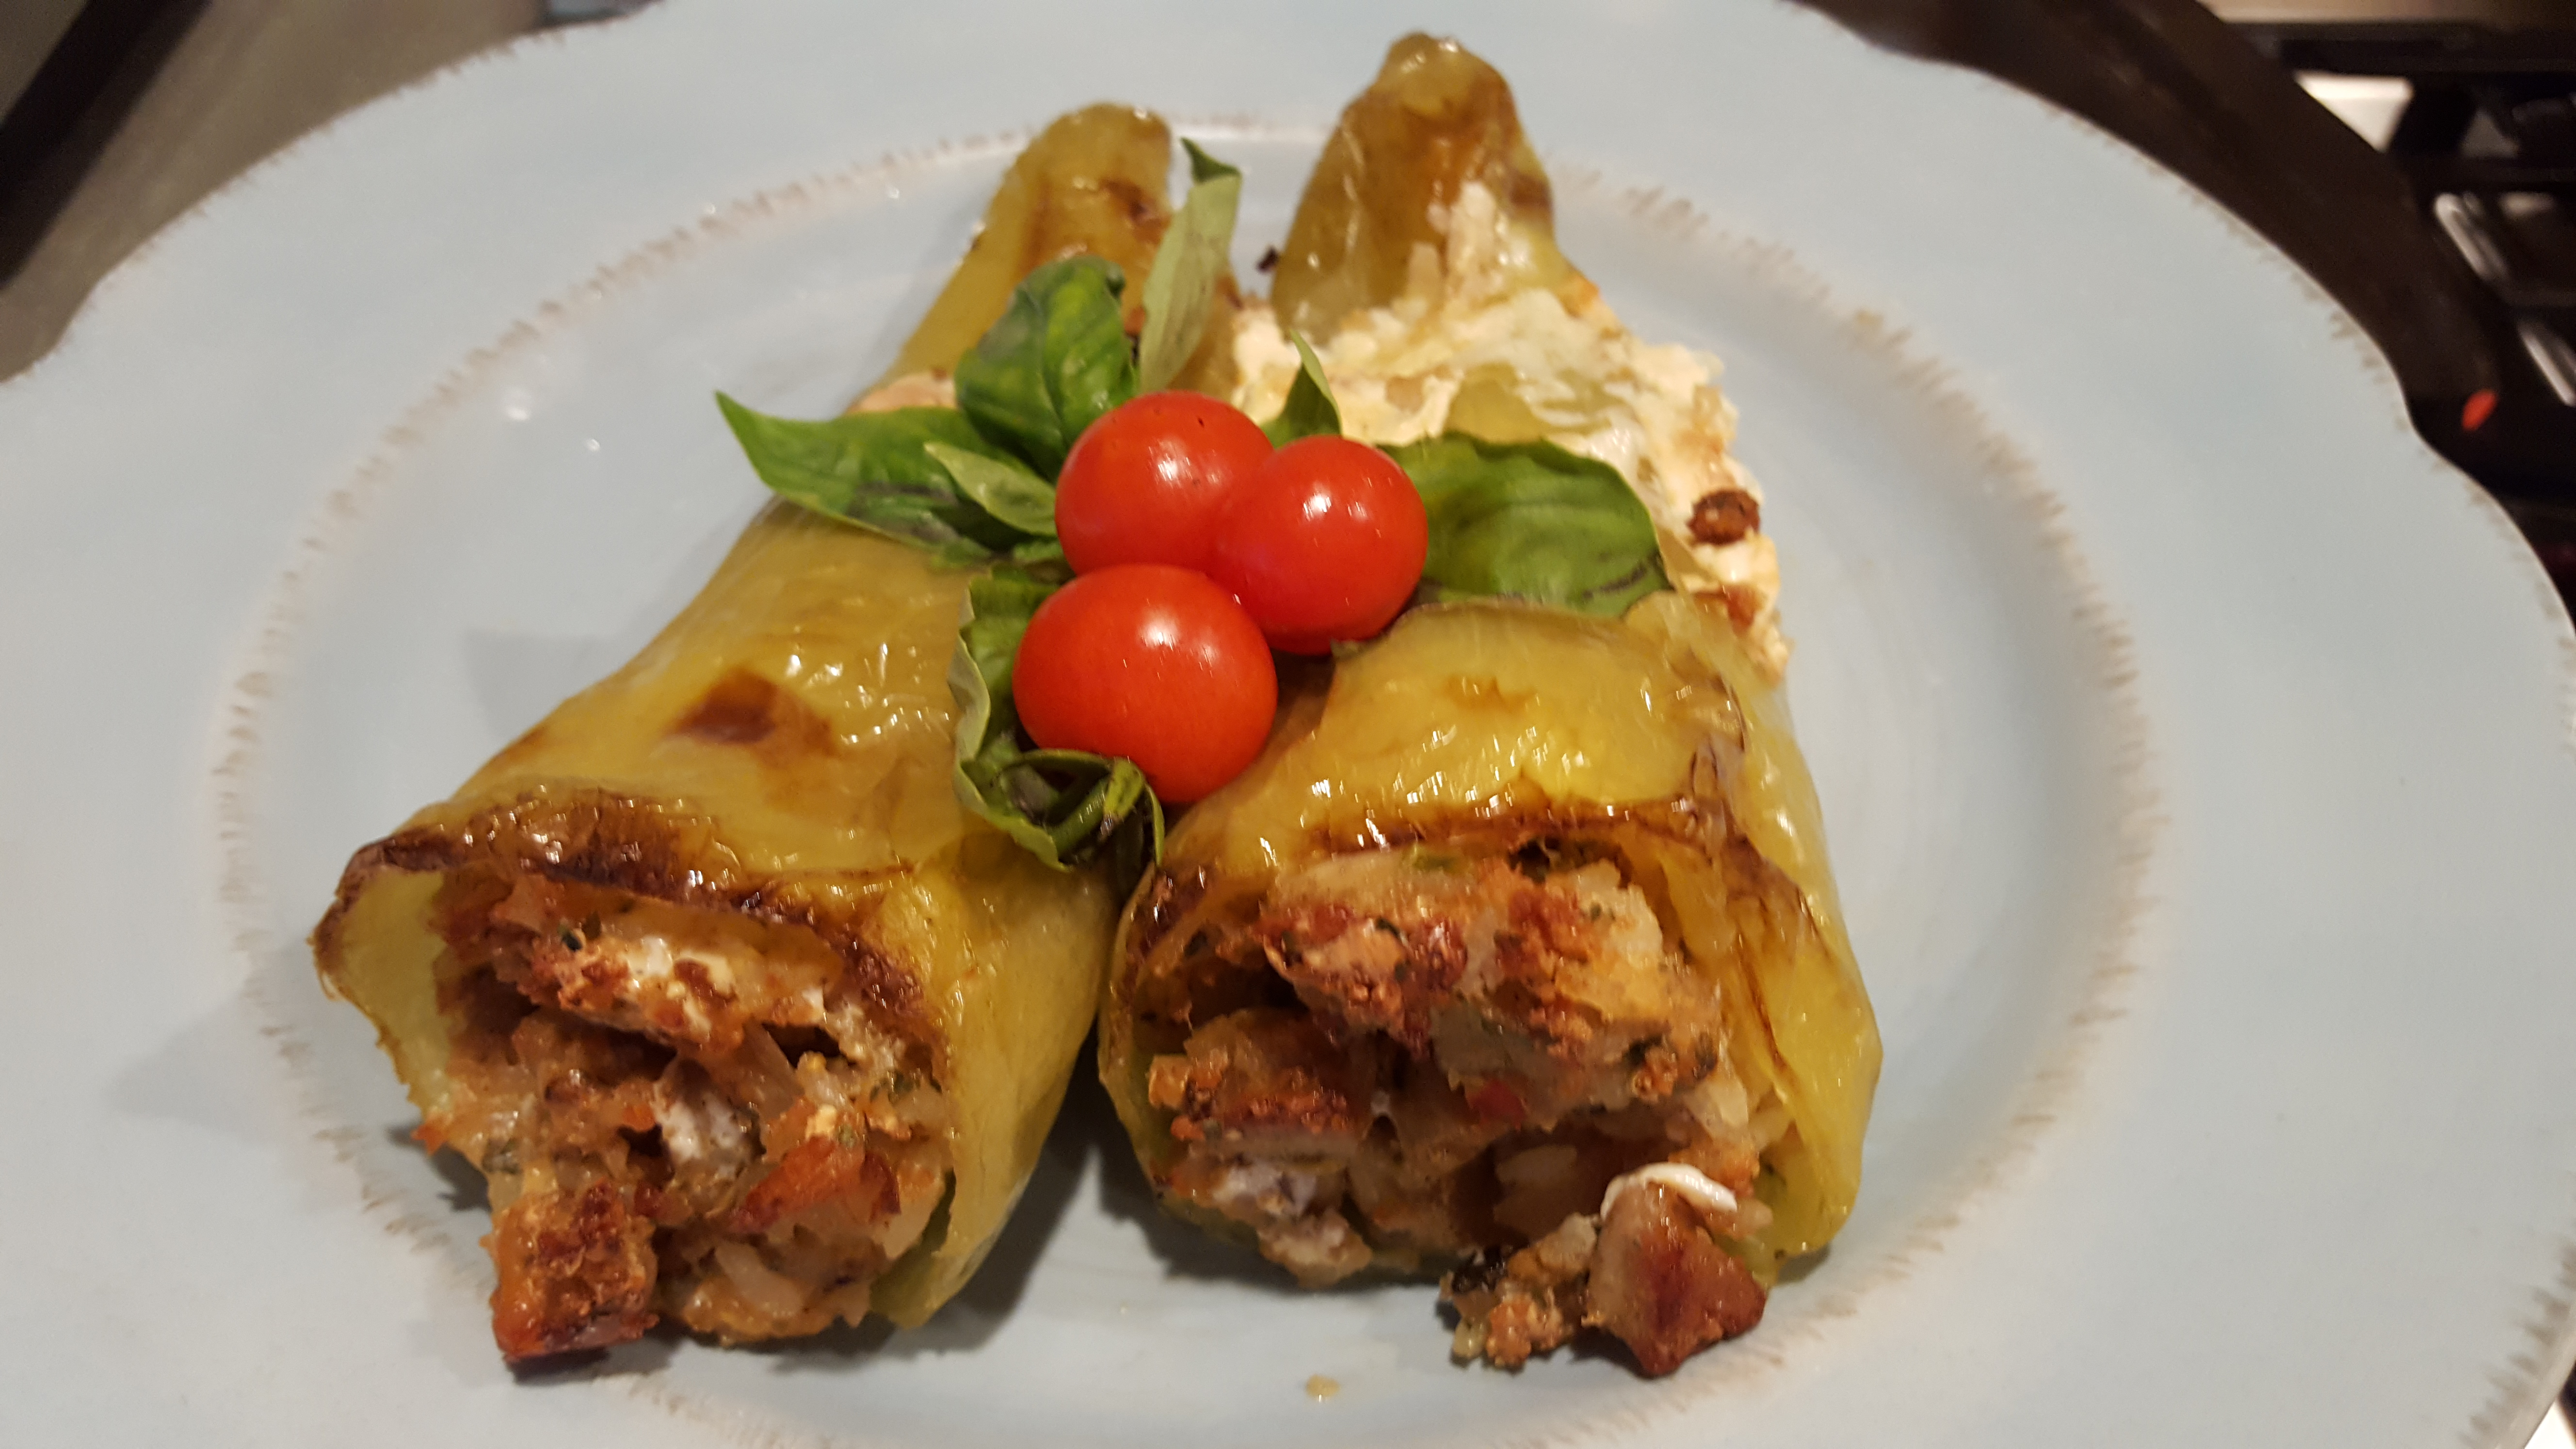 Italian Stuffed Cubanelle Peppers